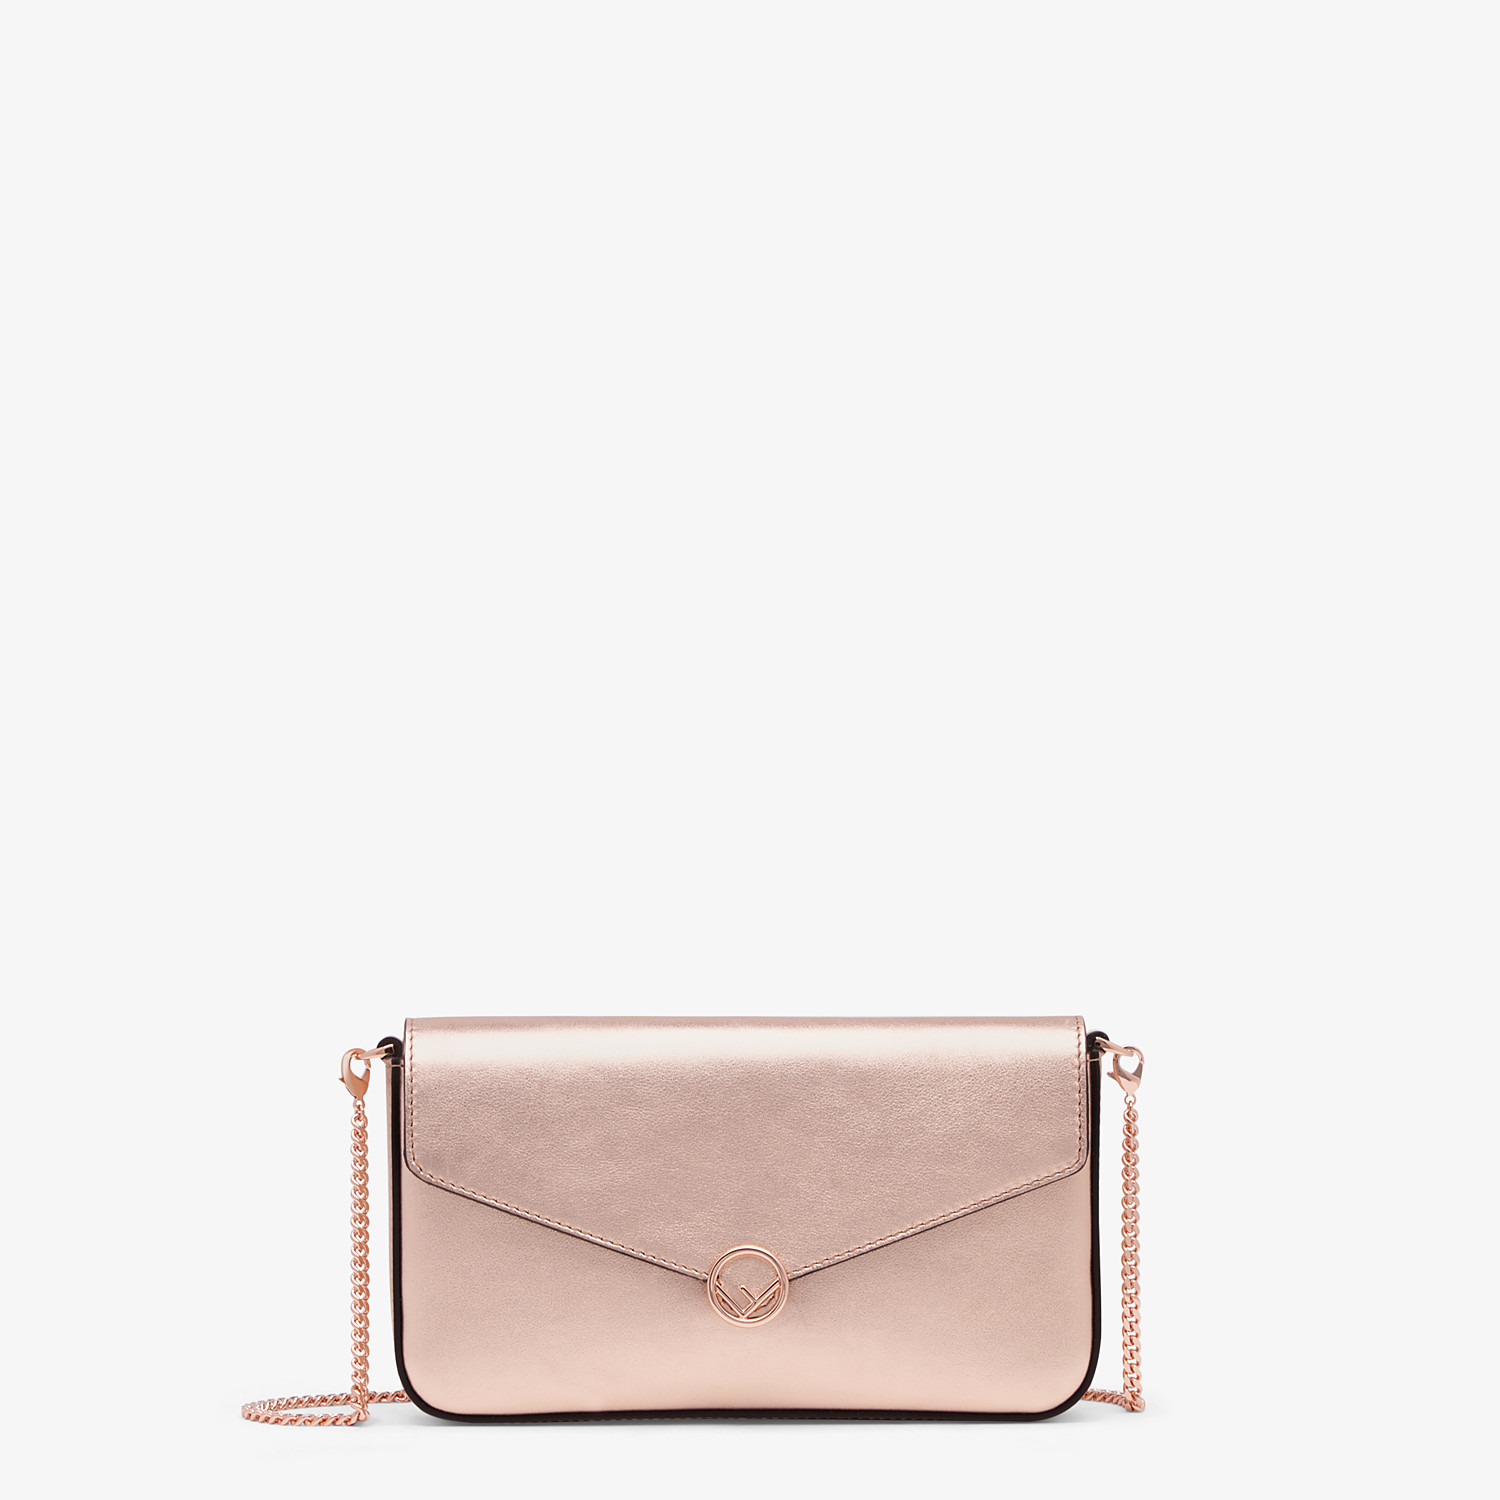 FENDI WALLET ON CHAIN WITH POUCHES - Pink leather mini-bag - view 1 detail